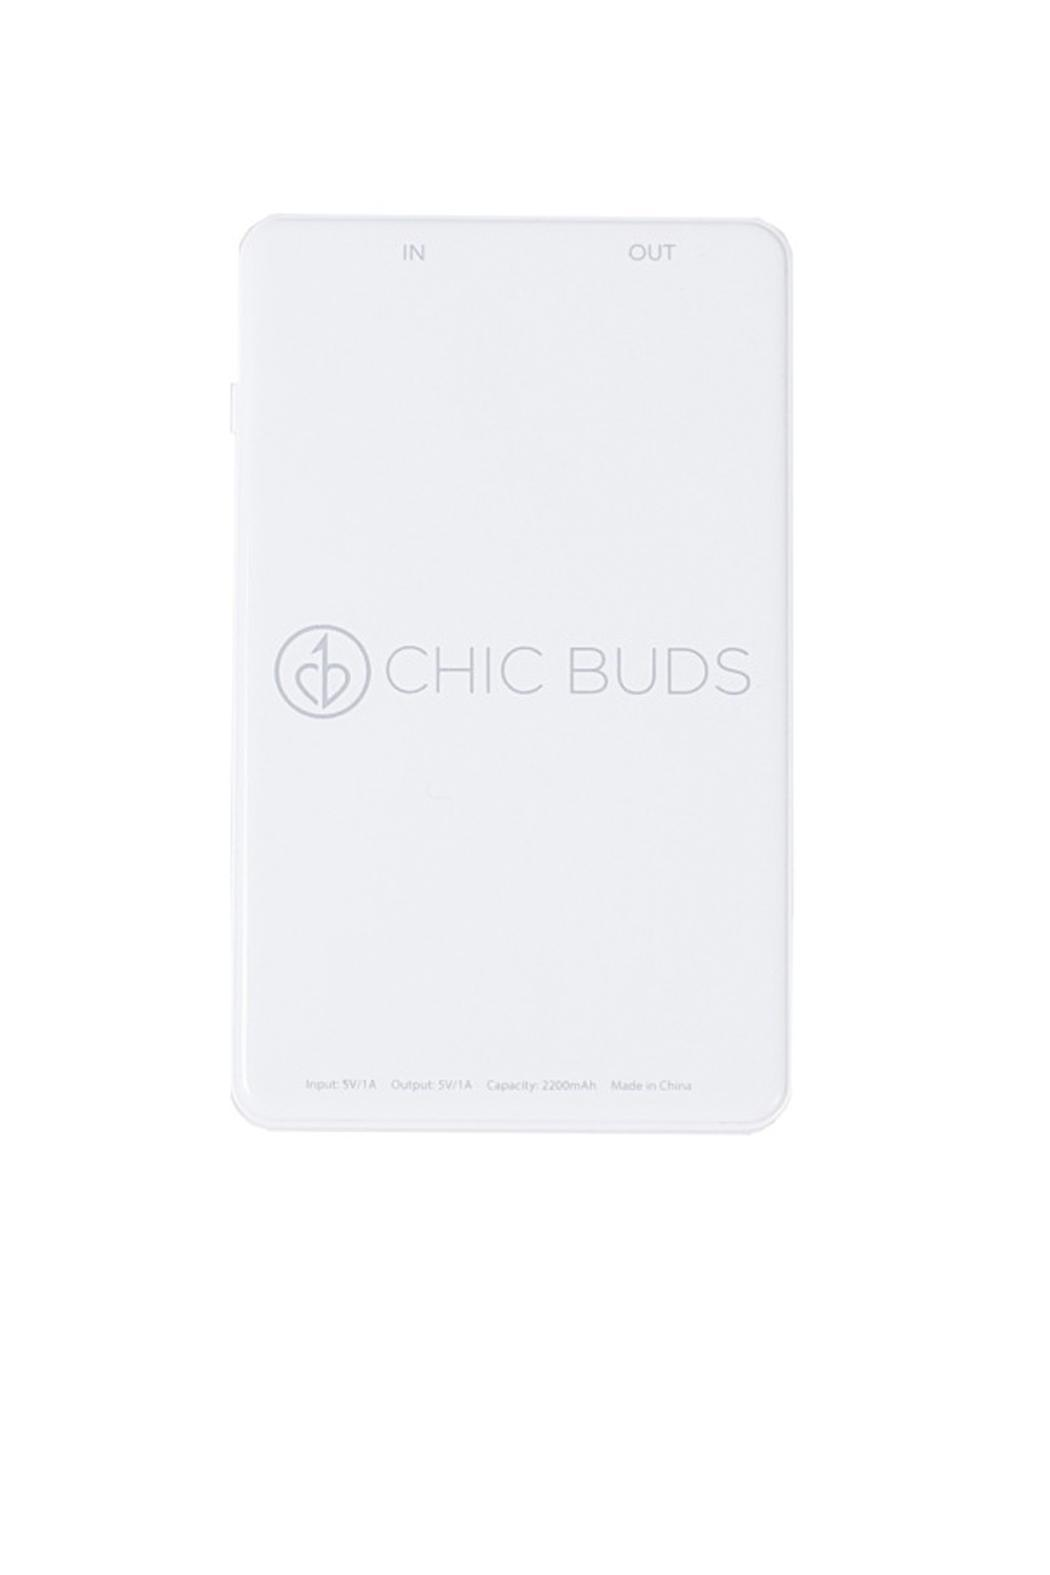 Chic Buds Slim Phone Charger From Orange County By Oc